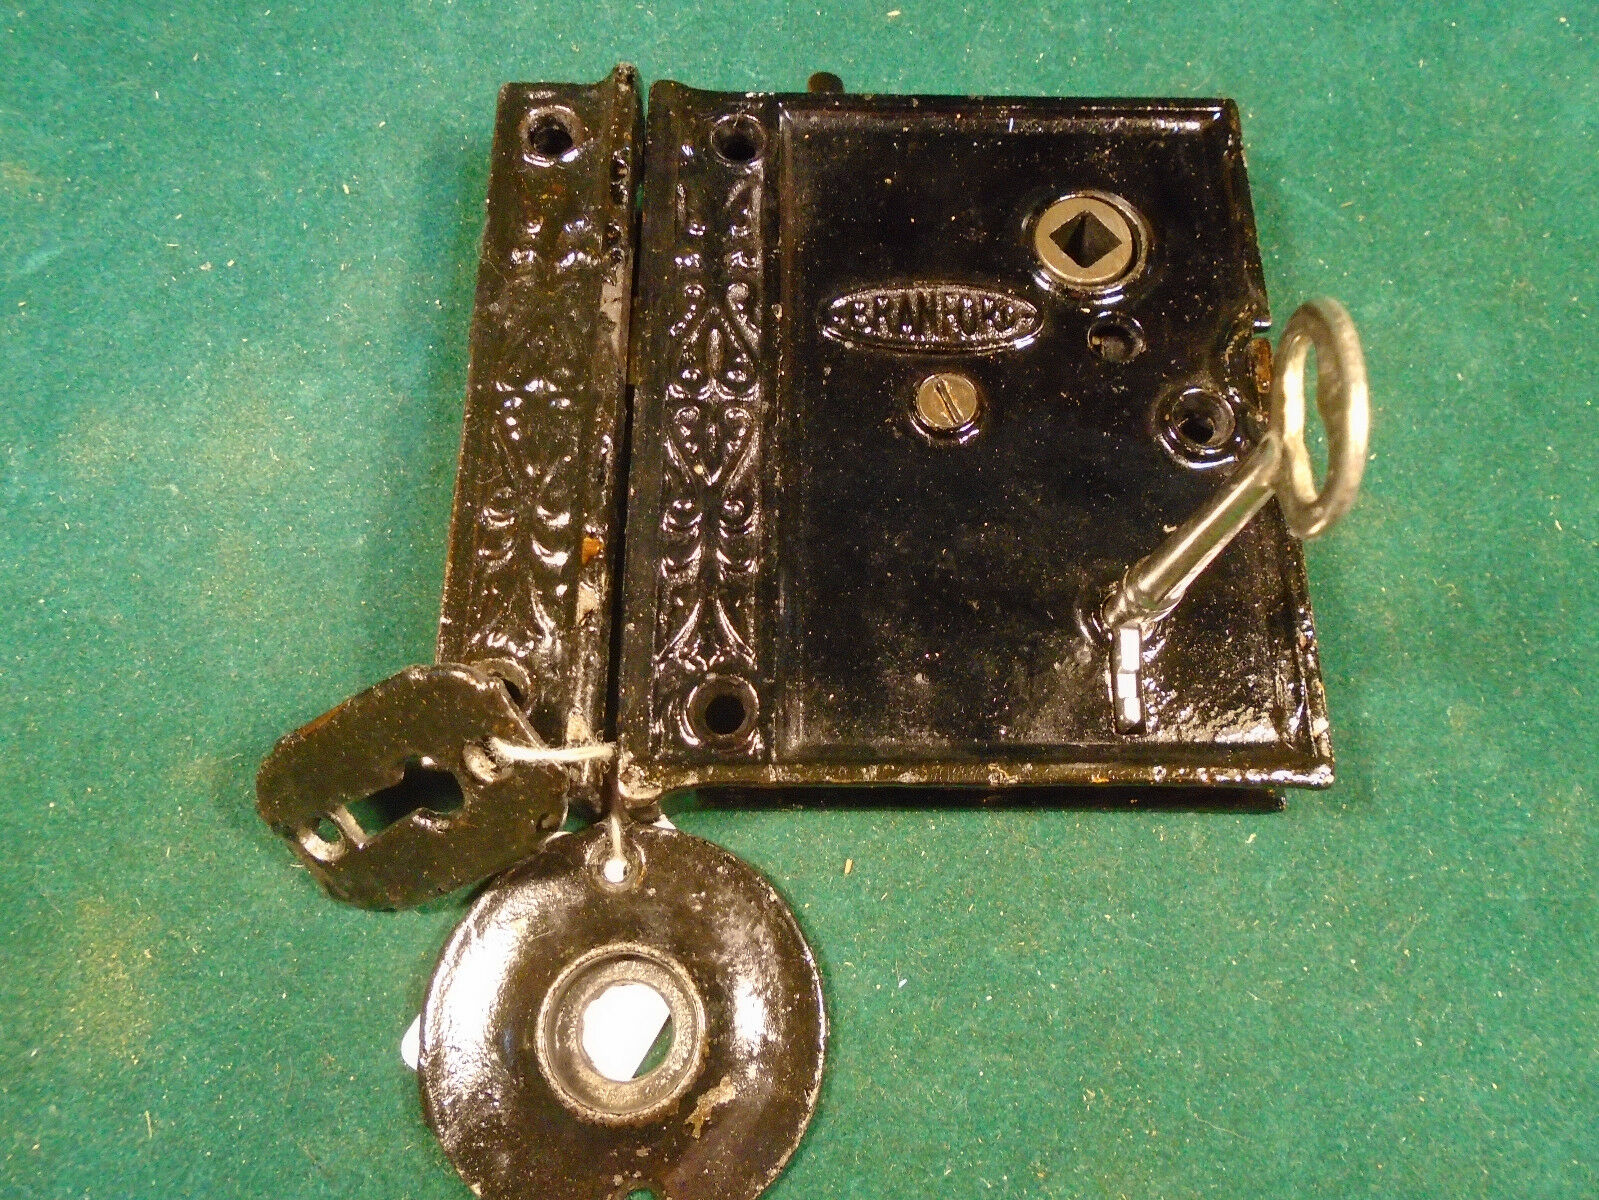 VINTAGE FANCY B.L.W. BRANFORD LOCK  RIM LOCK w/KEY & KEEPER - VERY NICE (4804-B)